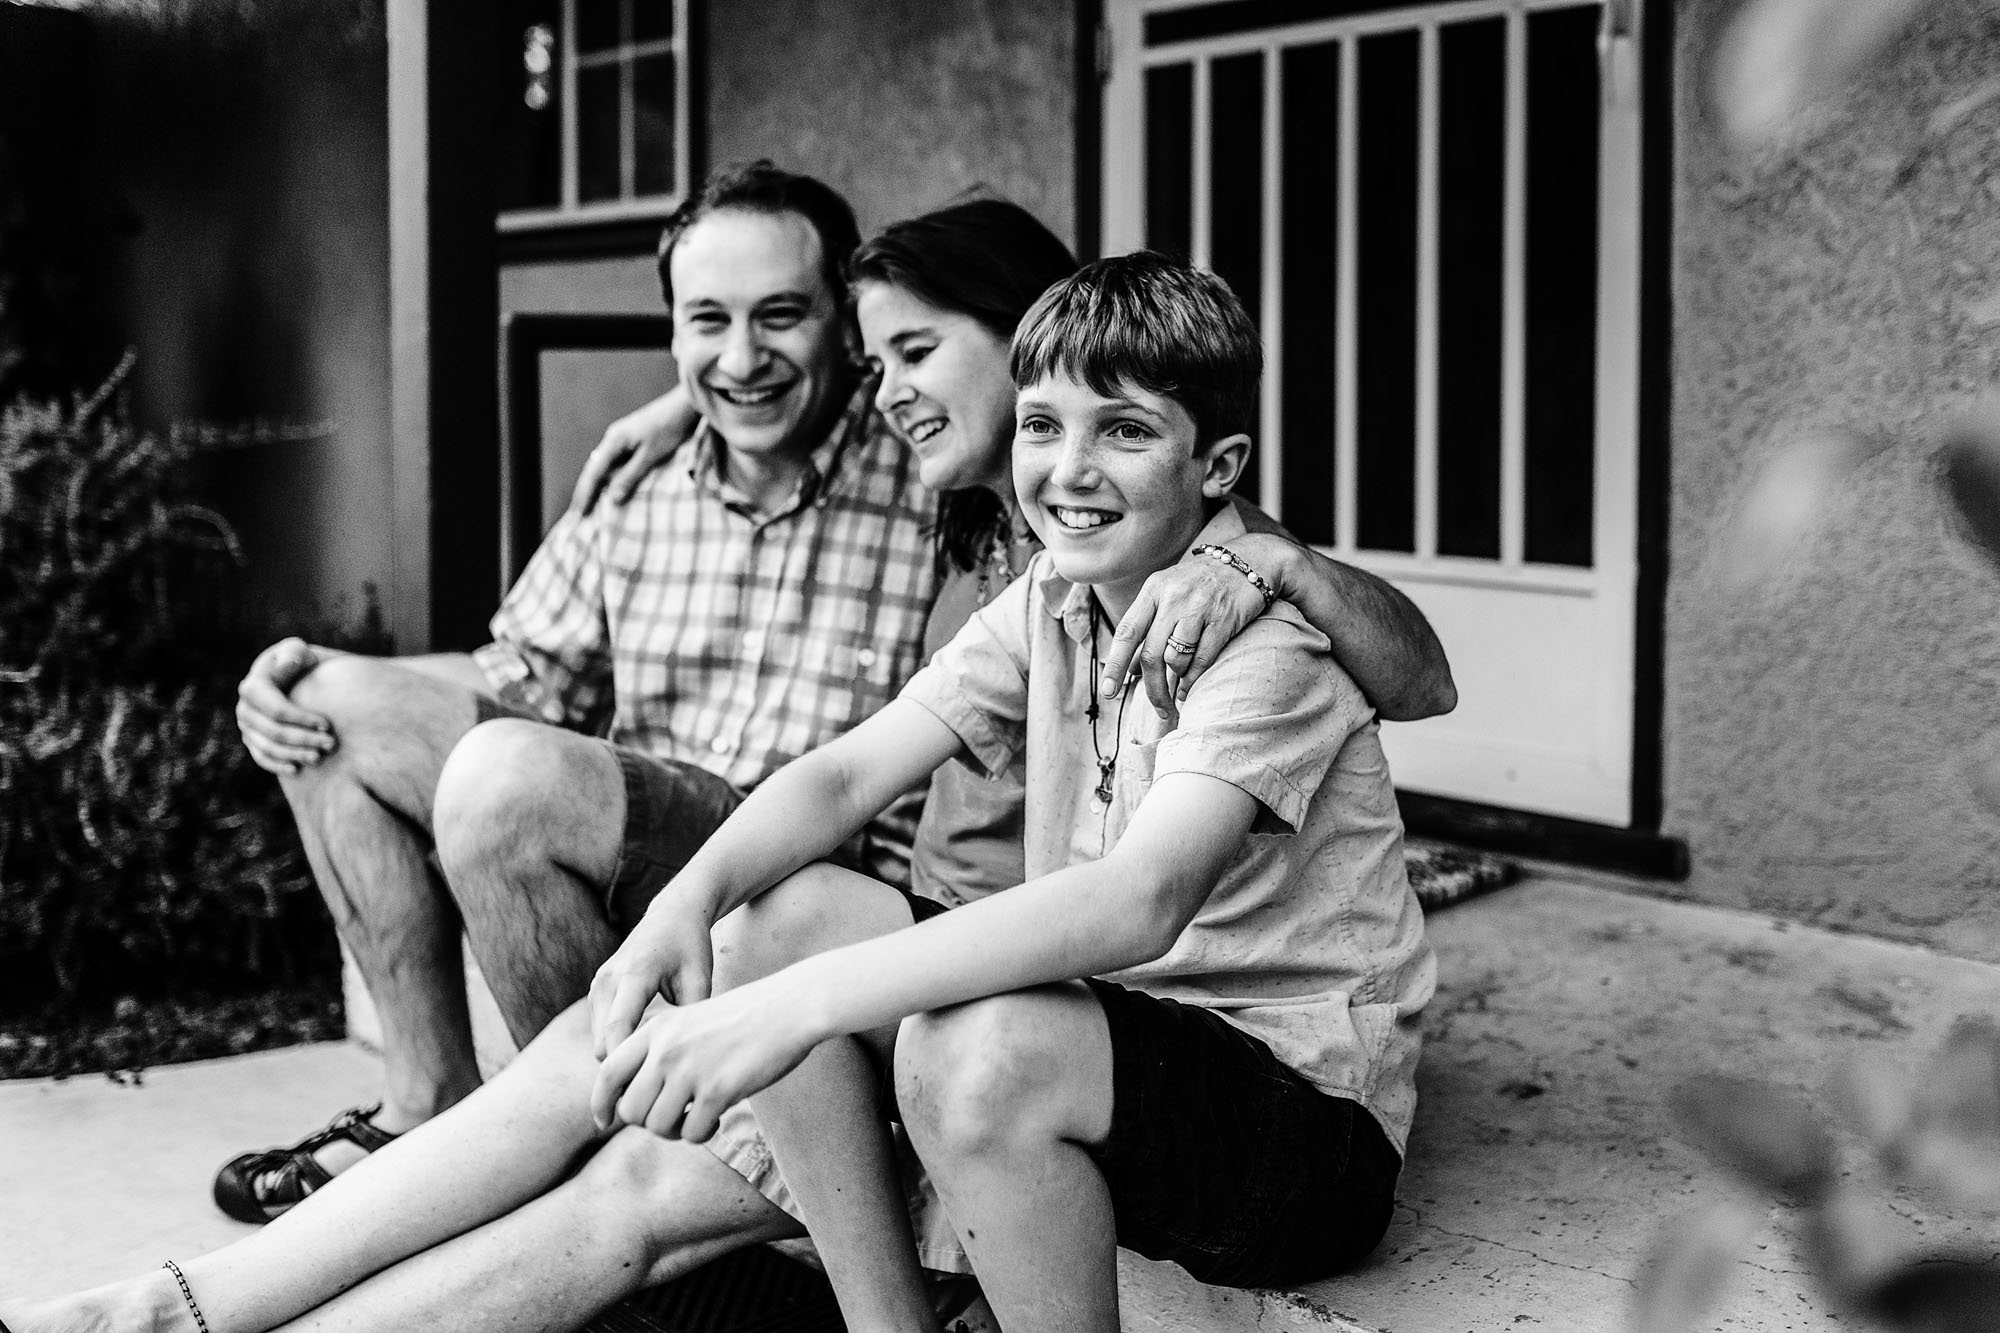 A timeless image of a son smiling with his family during a lifestyle photo session with Amy Wright, a photographer based out of Roseville, California.